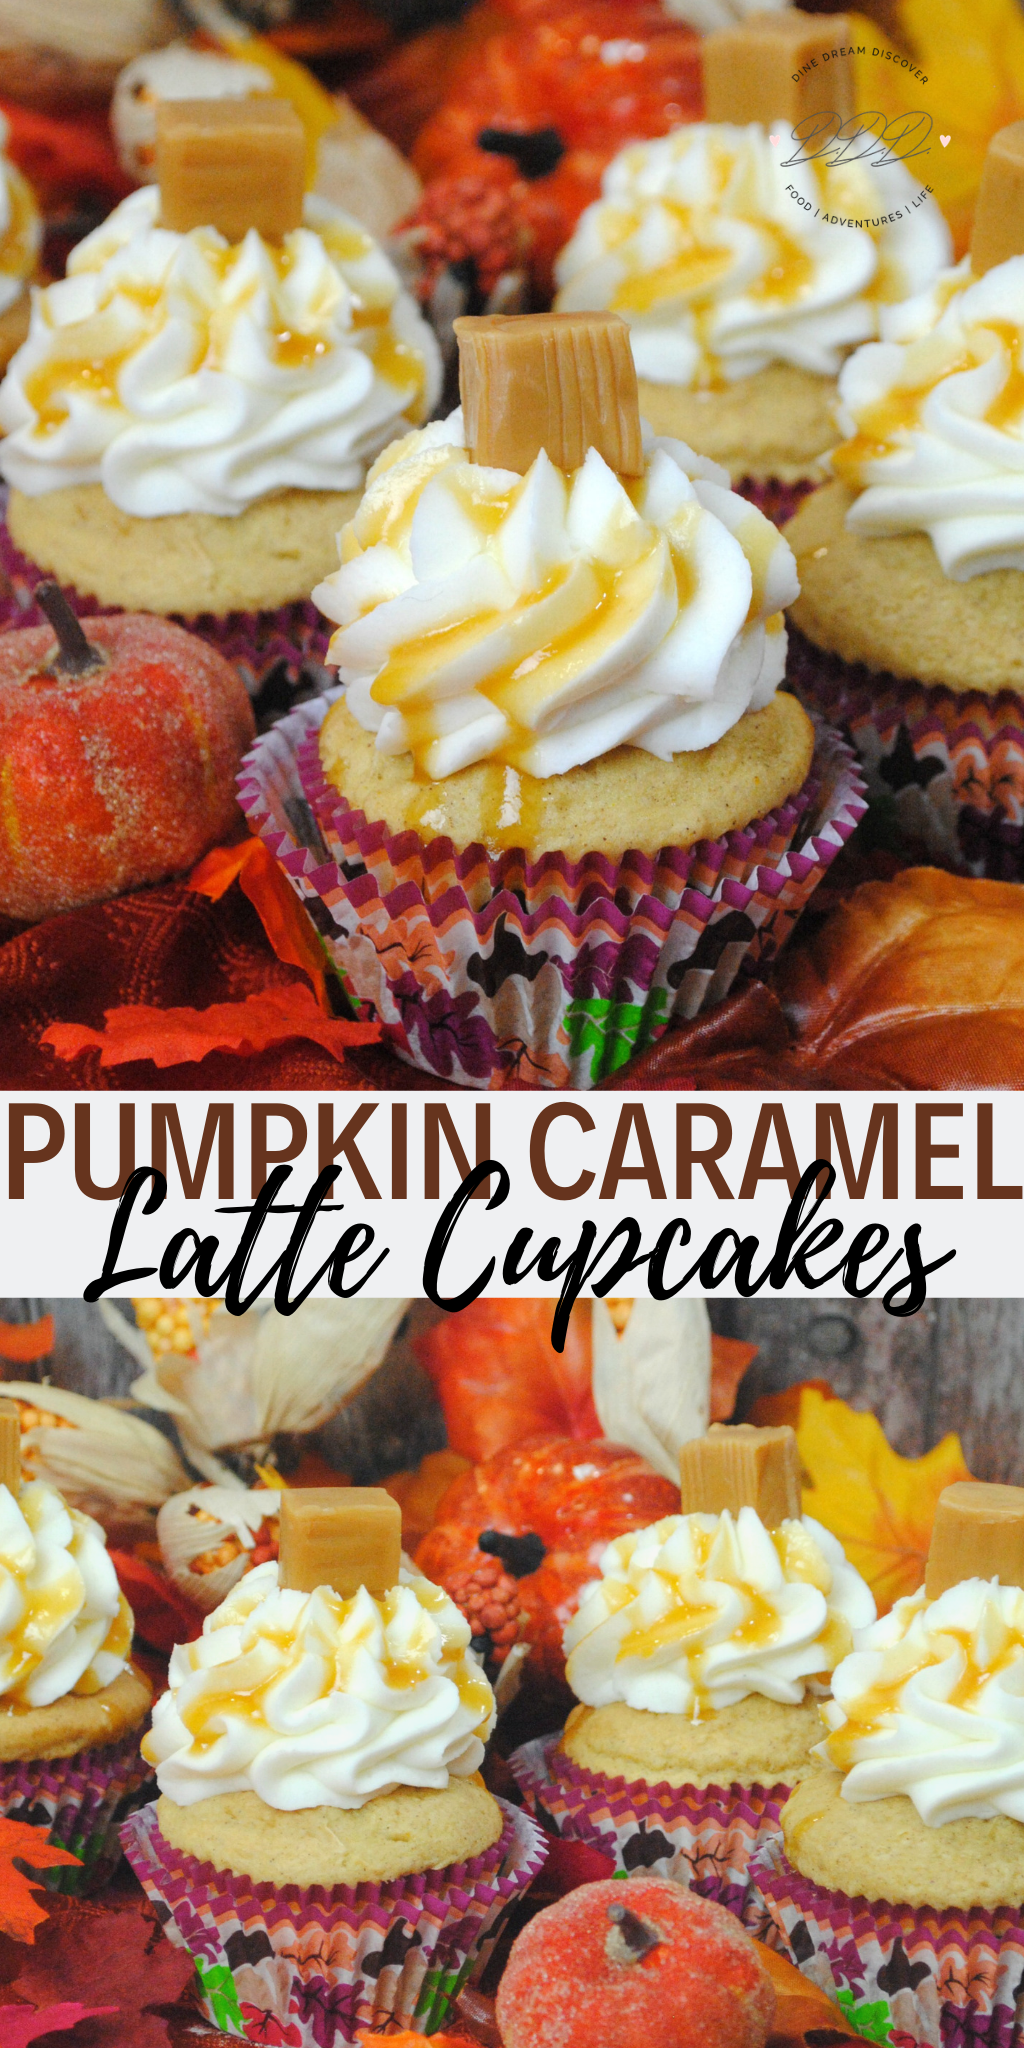 Pumpkin Caramel Latte Cupcake is a blend of pumpkin, caramel, and coffee all rolled into a mouth watering cupcake just in time for fall and pumpkin season.